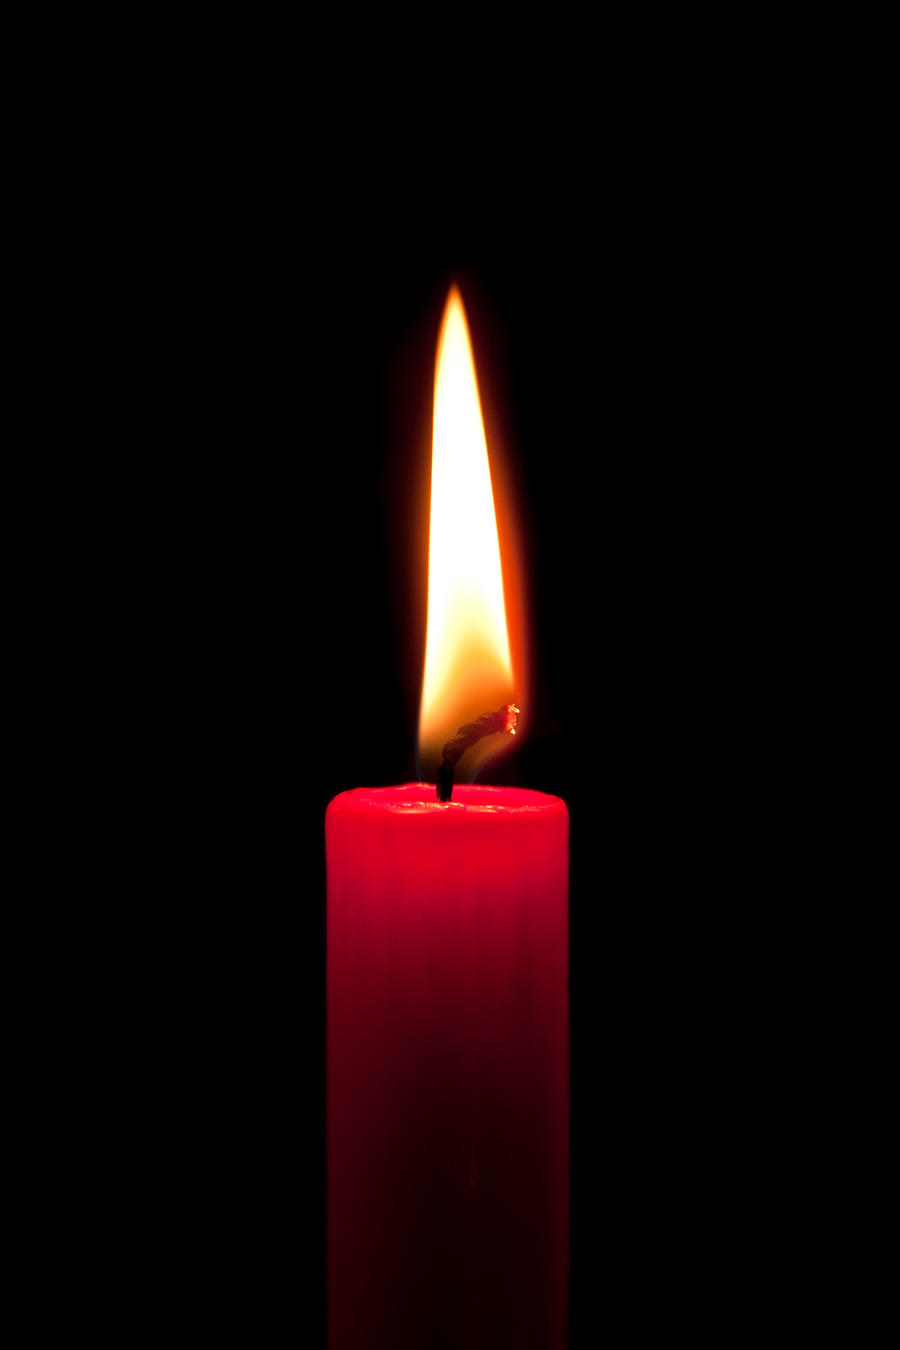 http://fc03.deviantart.net/fs70/i/2010/354/9/3/red_candle_by_rainbows_stock-d35a3w1.jpg